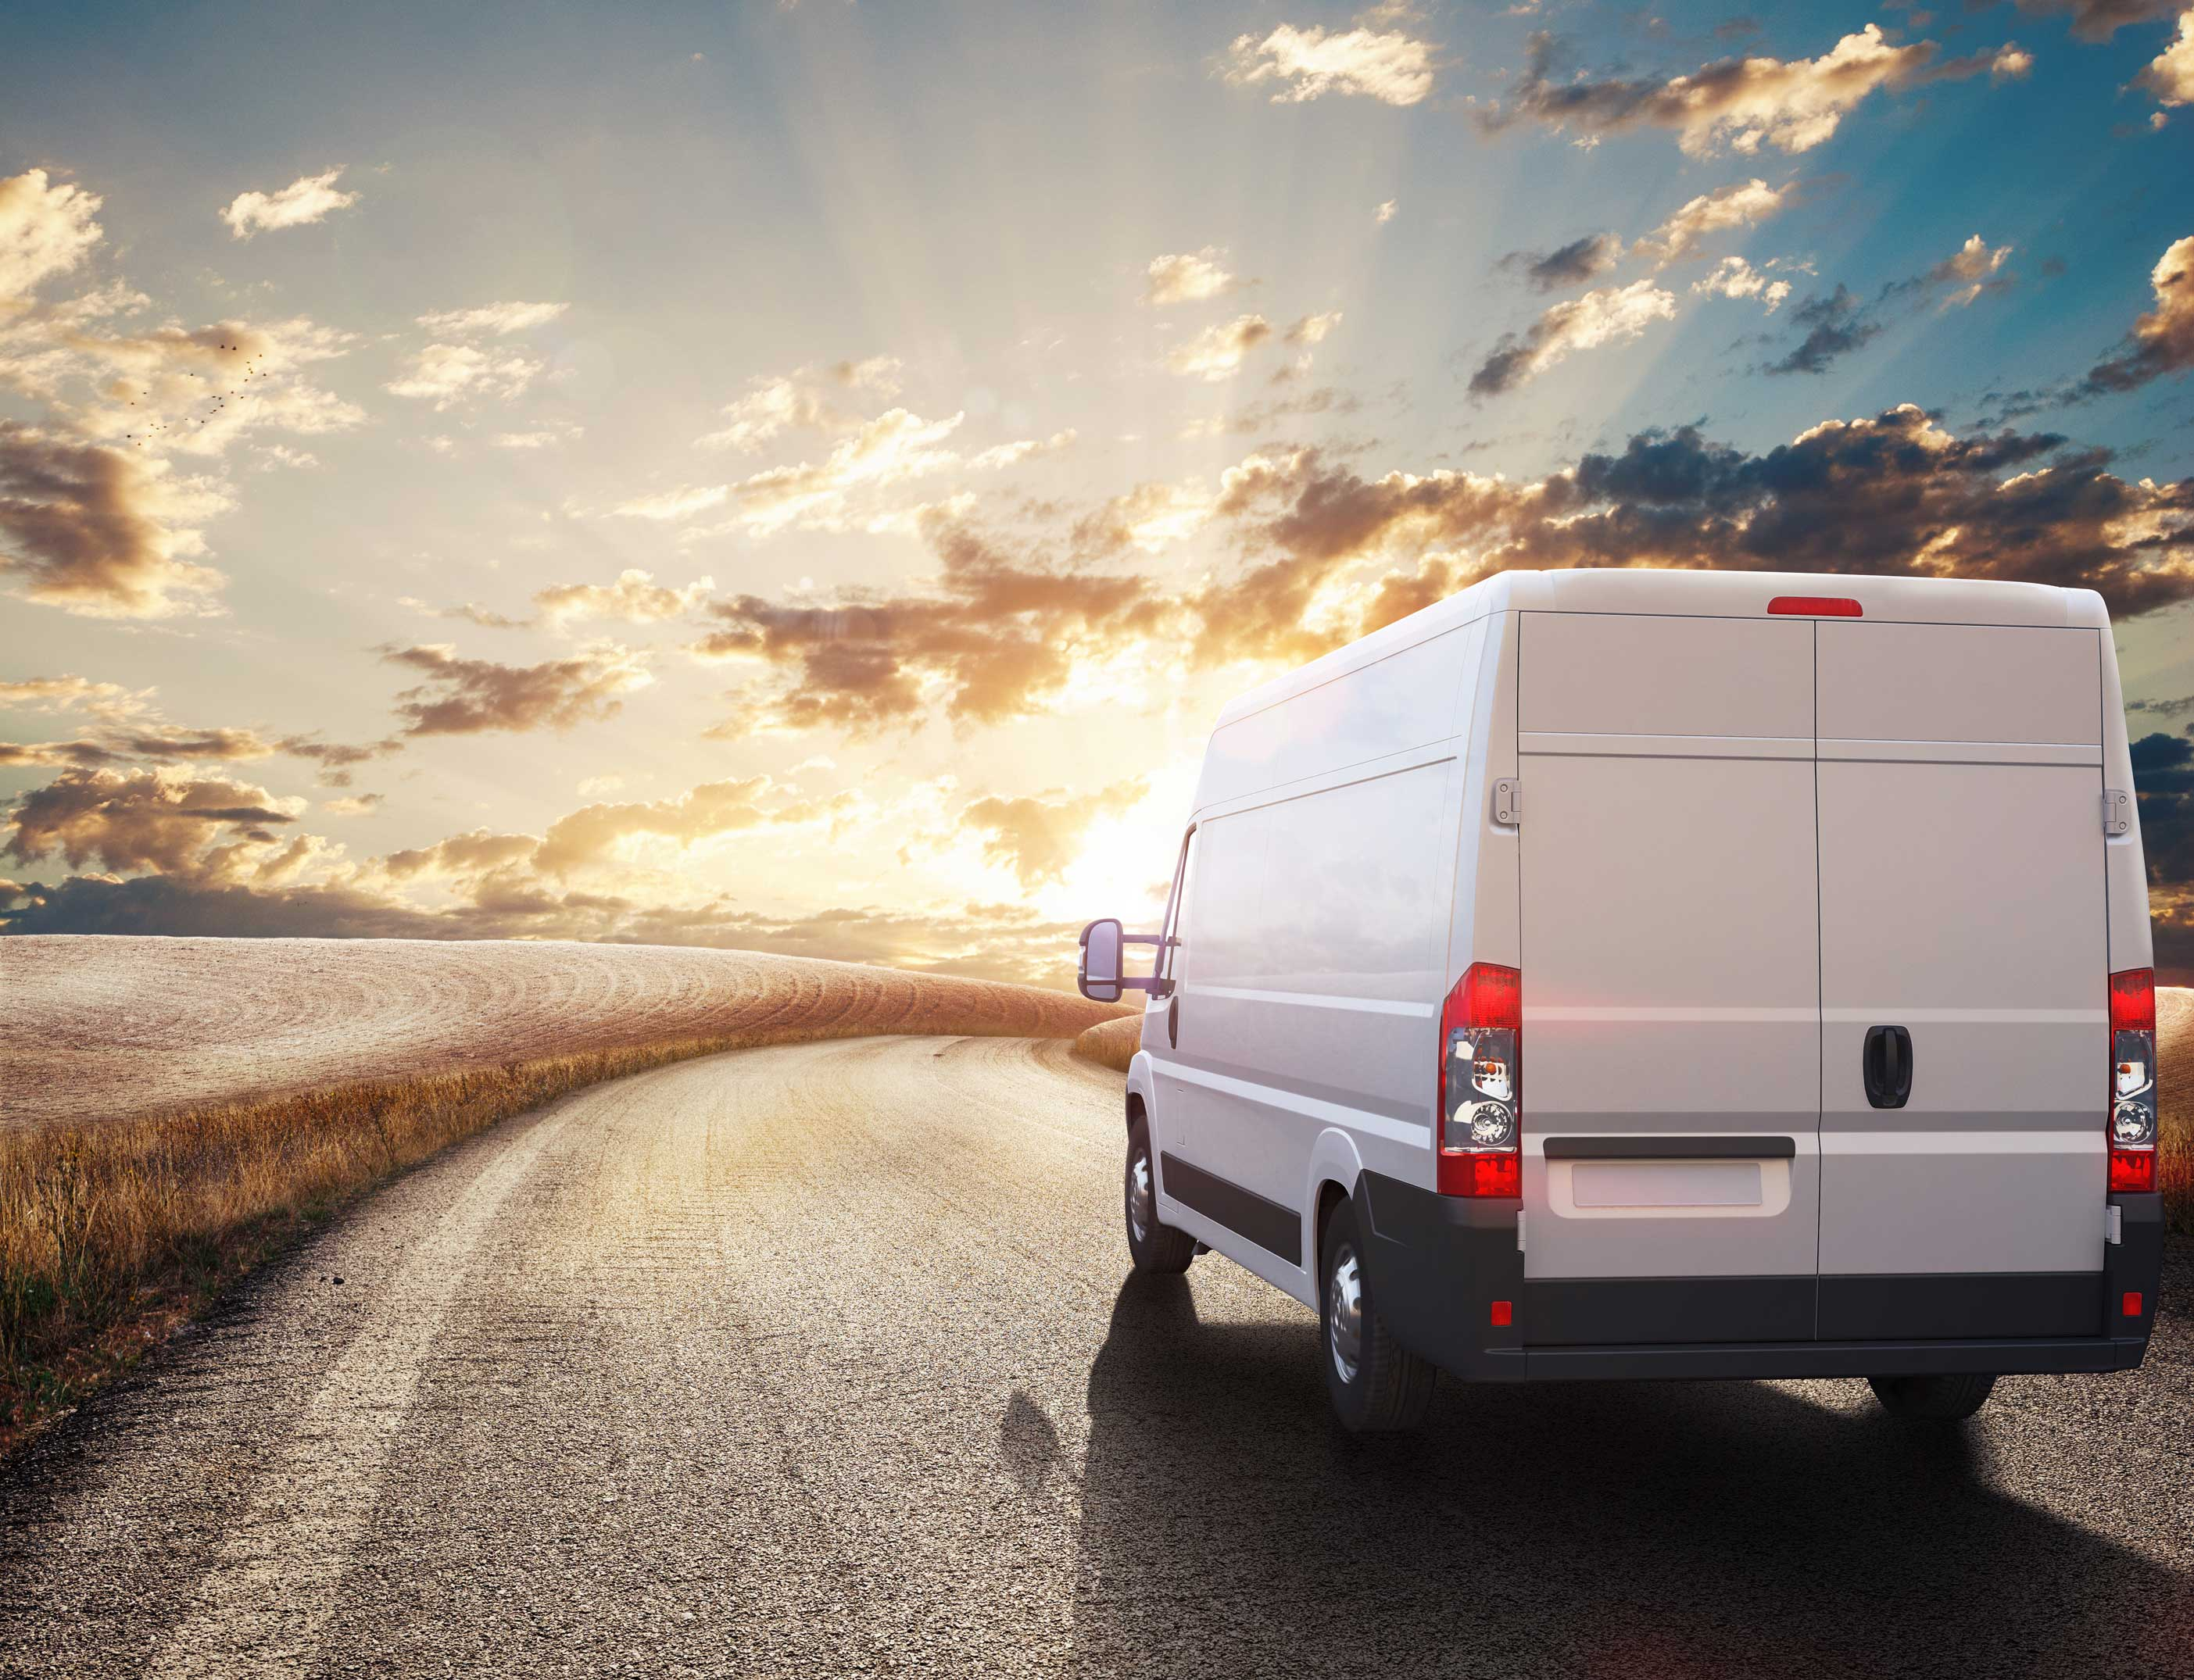 Bring Us Your Van And ActionVan Will Transform It Into An Outdoor Adventure Vehicle Quickly Economically